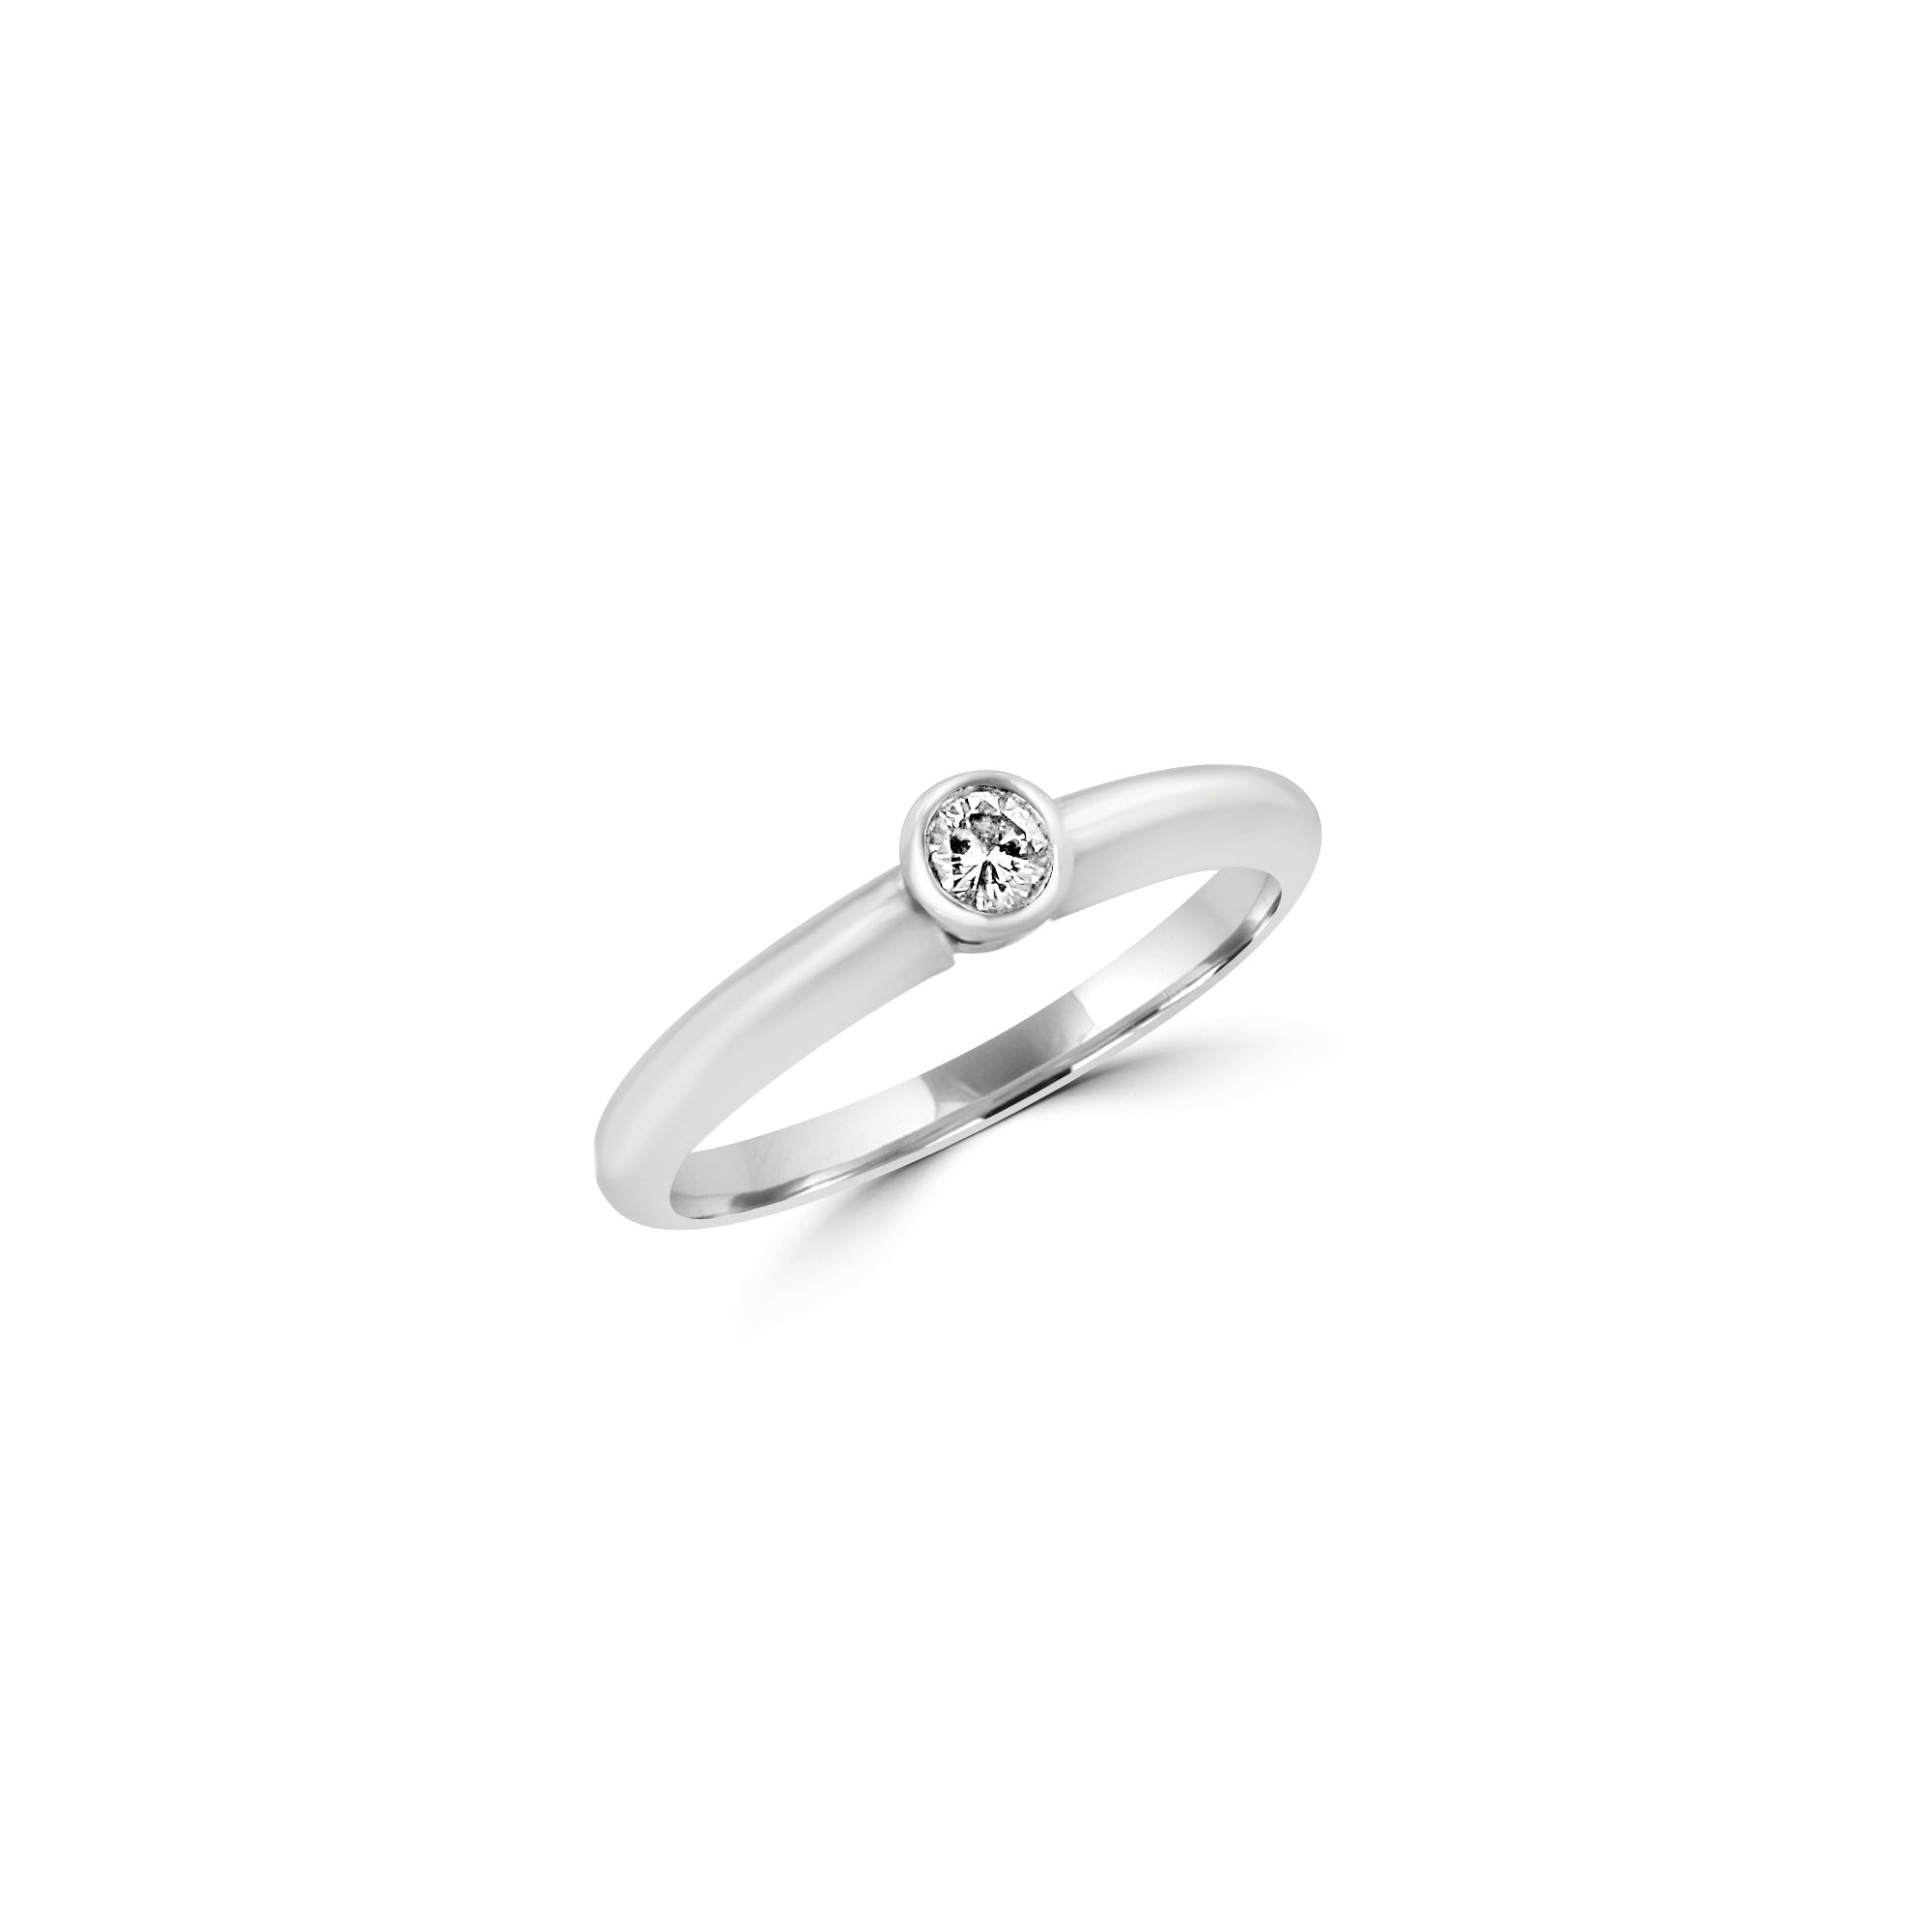 Platinum Engagement Rings Sale Uk: Pre-owned Platinum Small Round Diamond Solitaire Ring